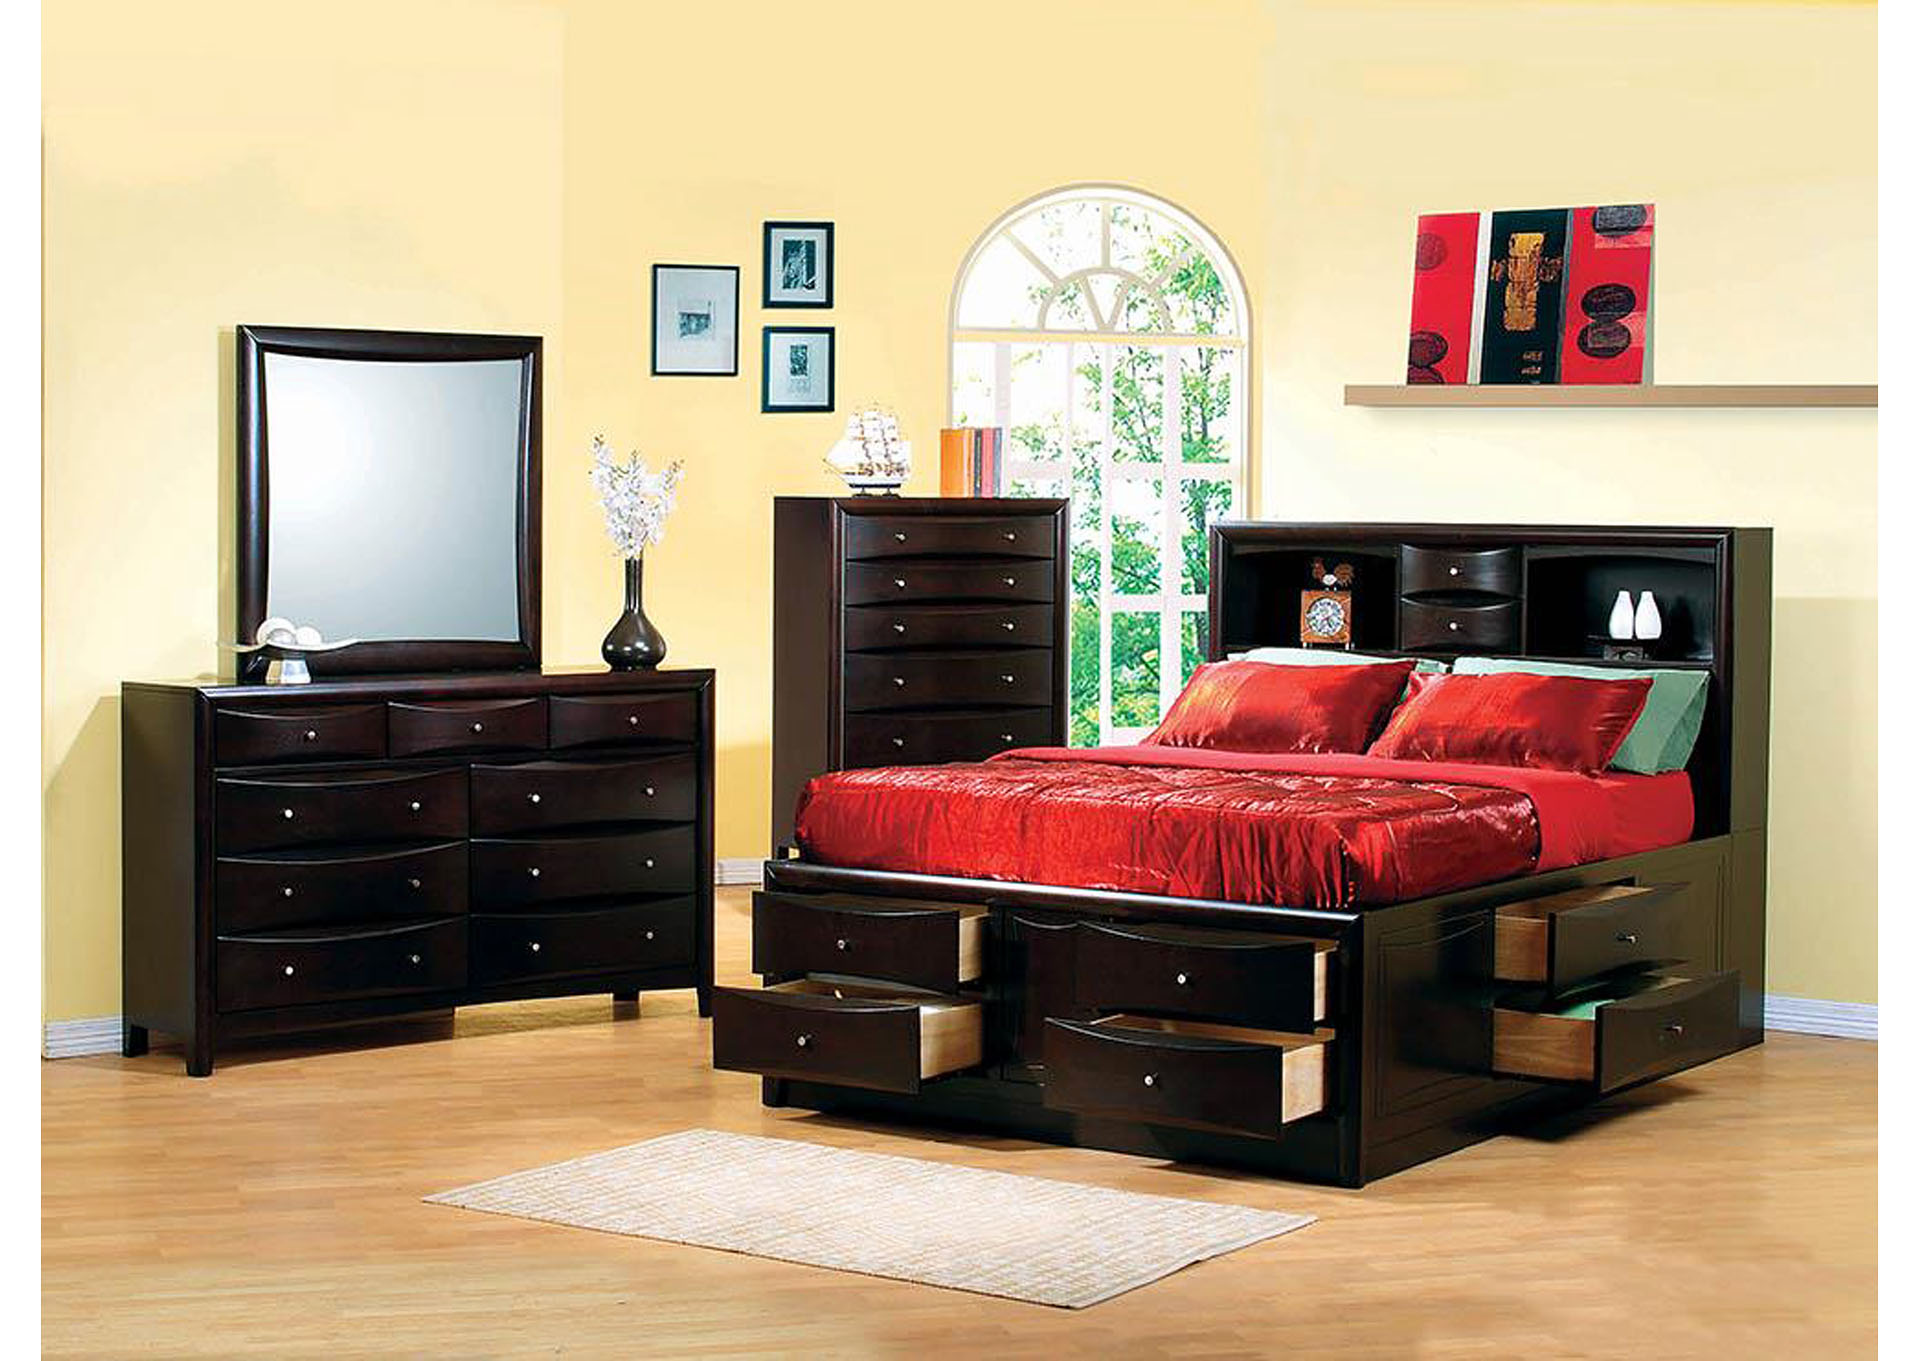 Phoenix Cappuccino King Storage Bed,Coaster Furniture